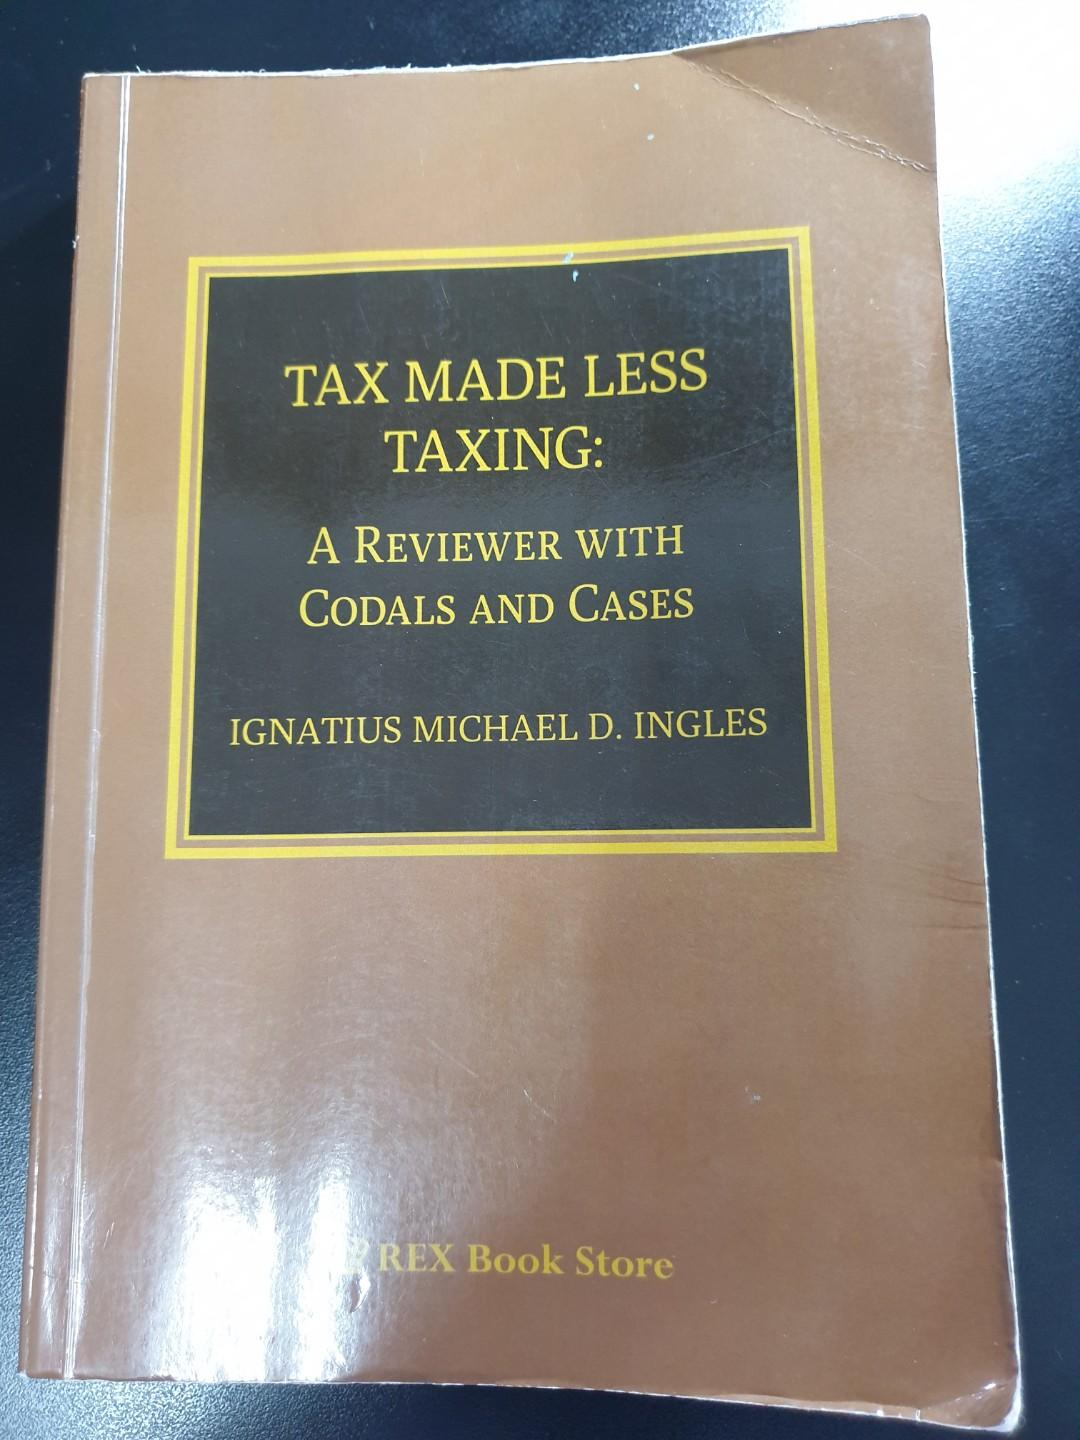 [Law Book] Tax Made Less Taxing: A Reviewer with Codals and Cases, Ingles, 2015 Edition (paperbound)